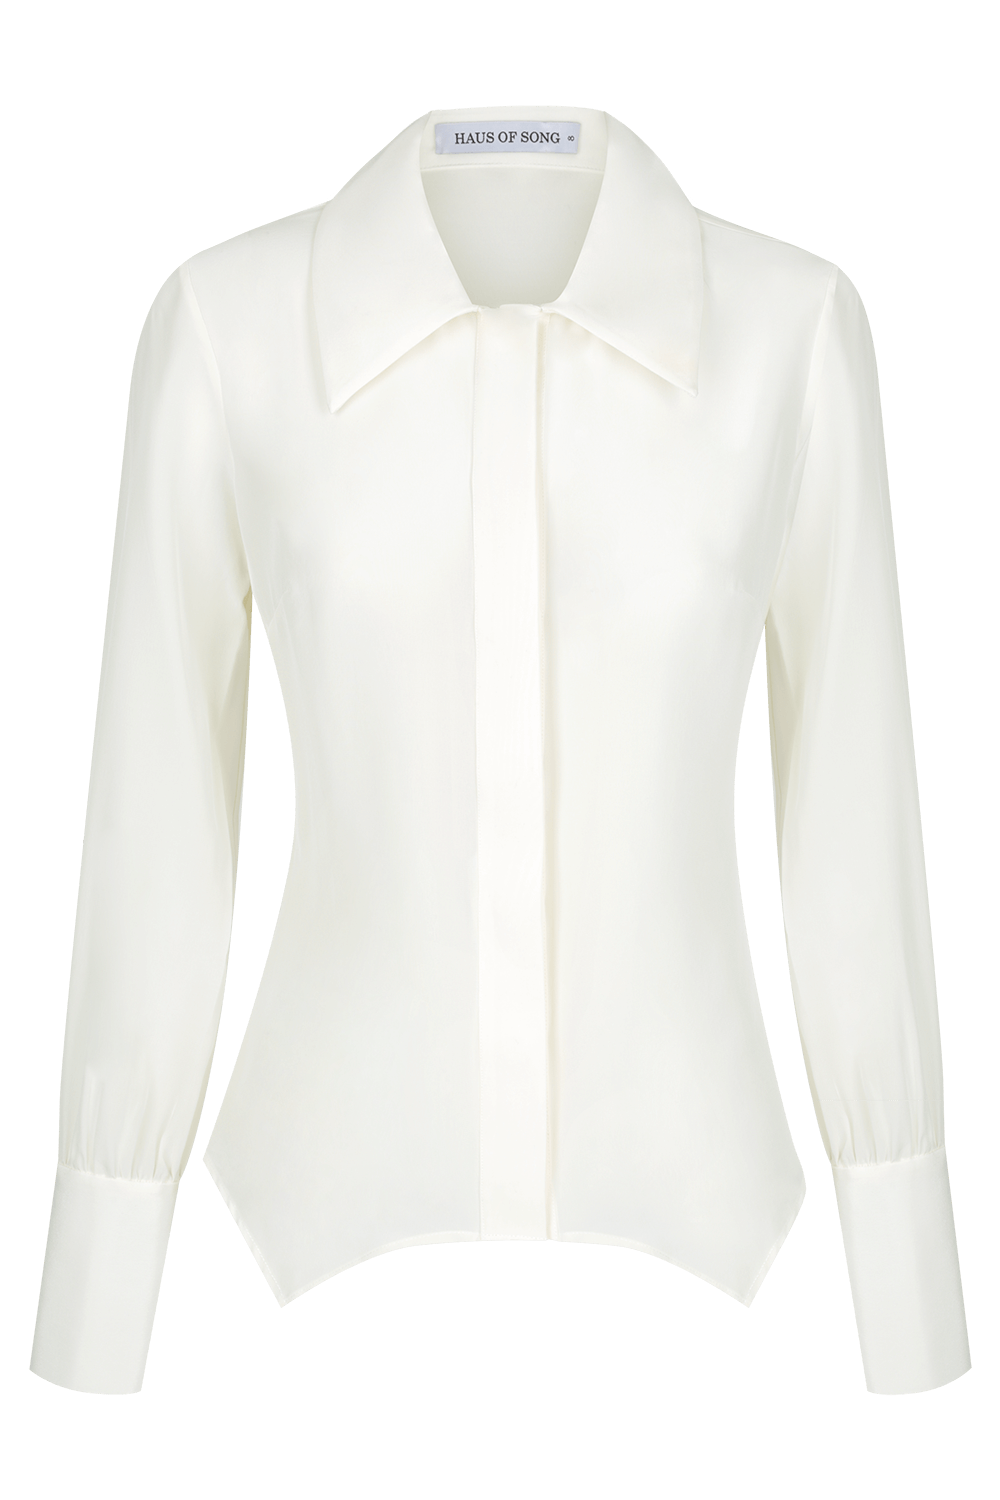 JANEL Silk Crêpe De Chine Shirt - IVORY - HAUS OF SONG